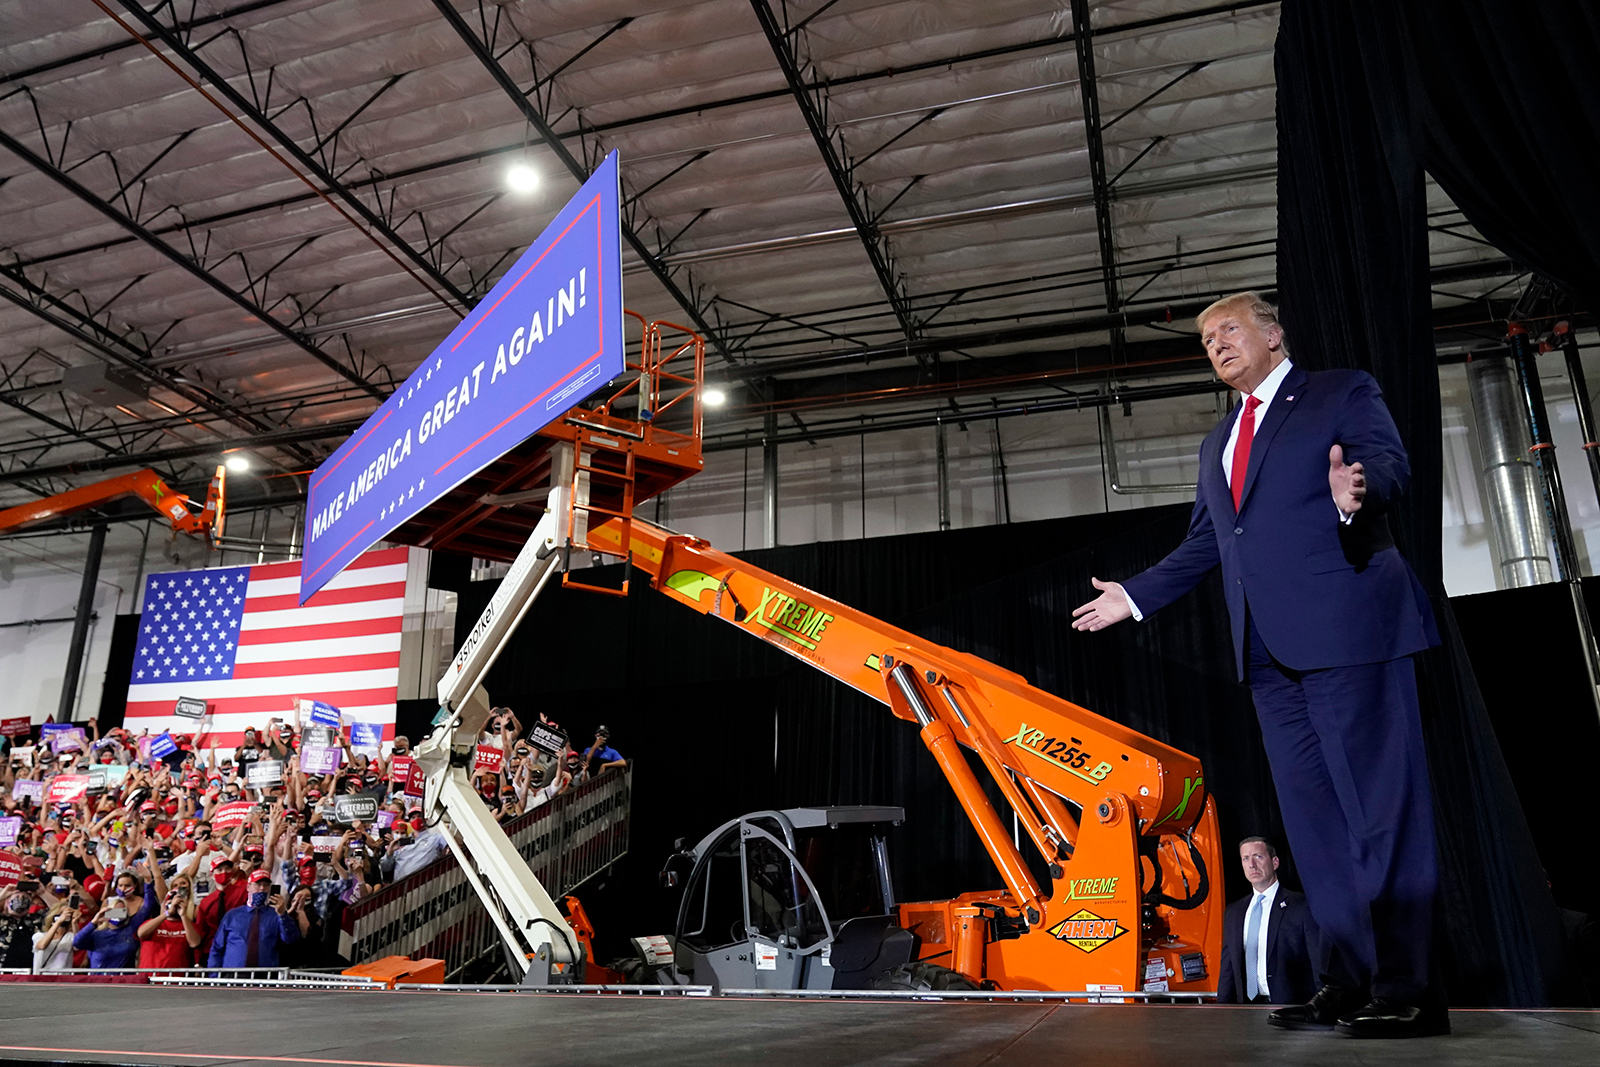 President Donald Trump arrives to speak at a rally at Xtreme Manufacturing in Henderson, Nevada, on September 13.